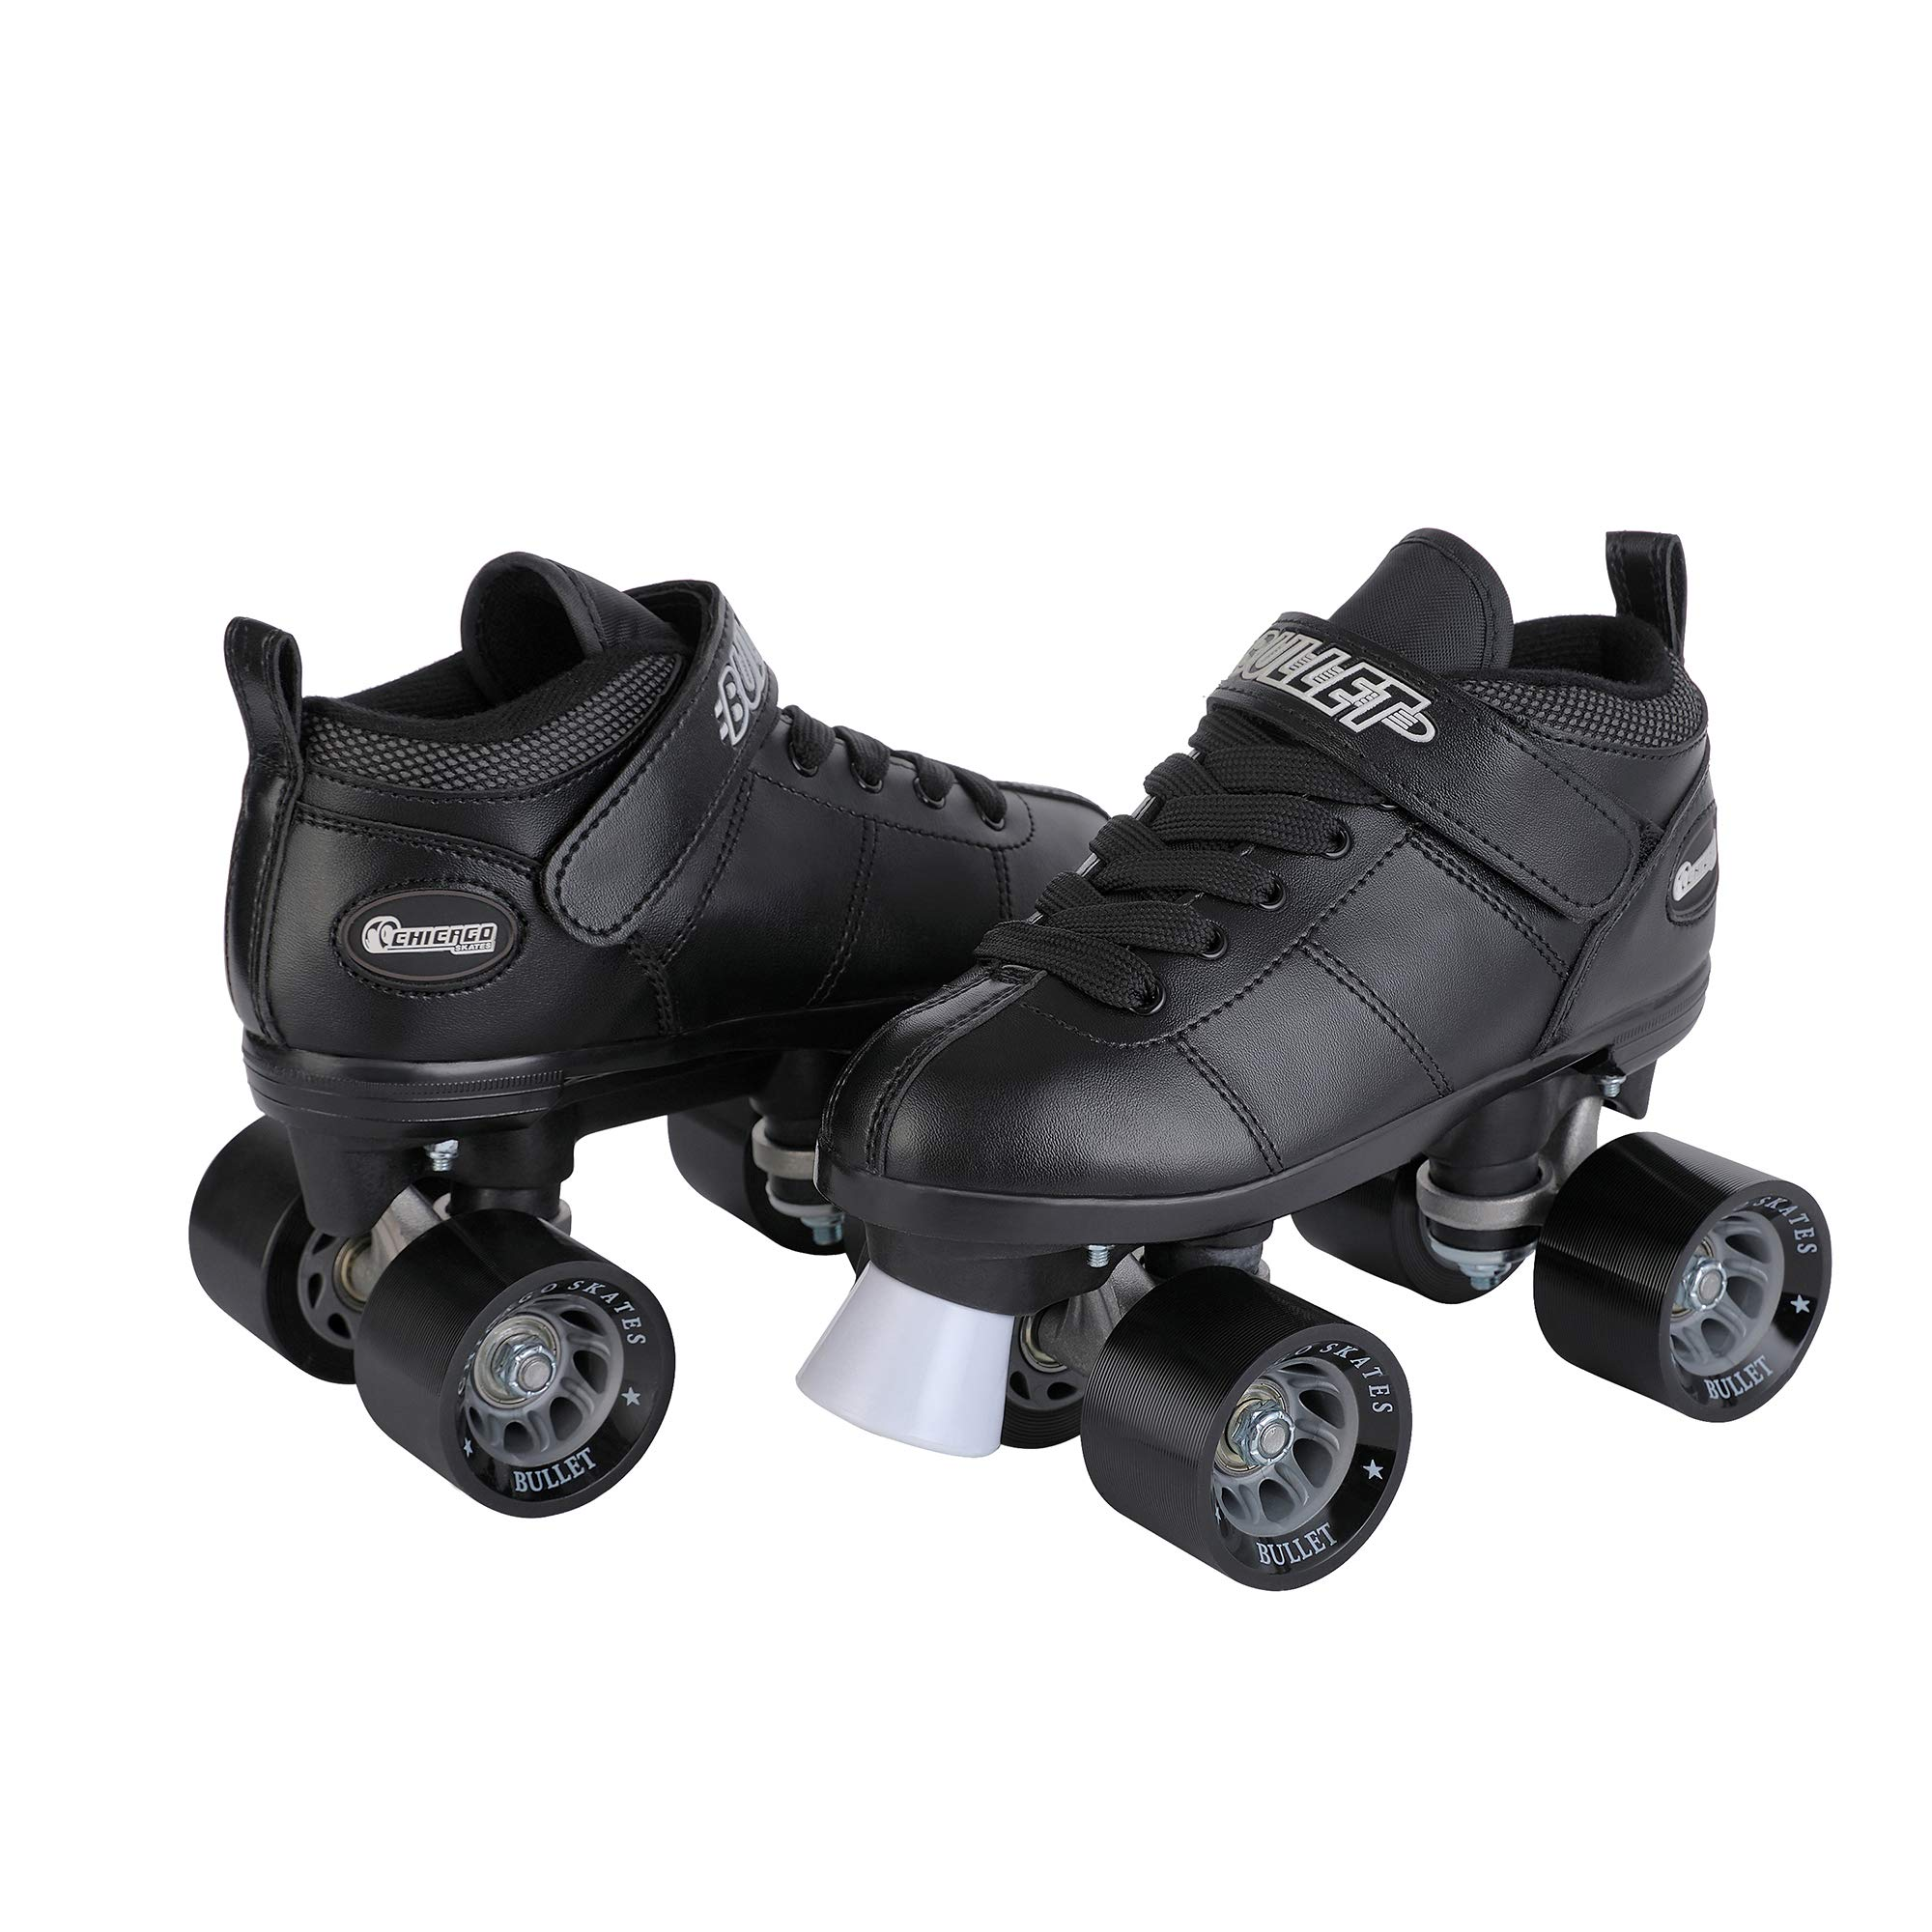 Chicago Bullet Men's Speed Roller Skate -Black Size 4 by Chicago Skates (Image #1)